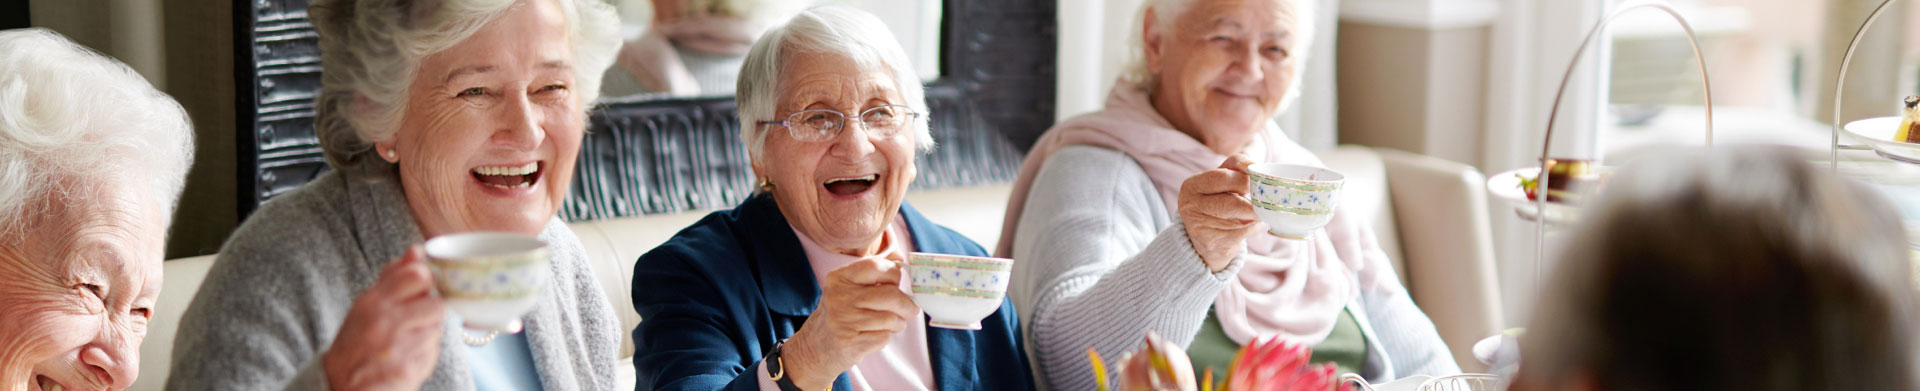 Elderly women hold up fine china tea cups and smile for the camera